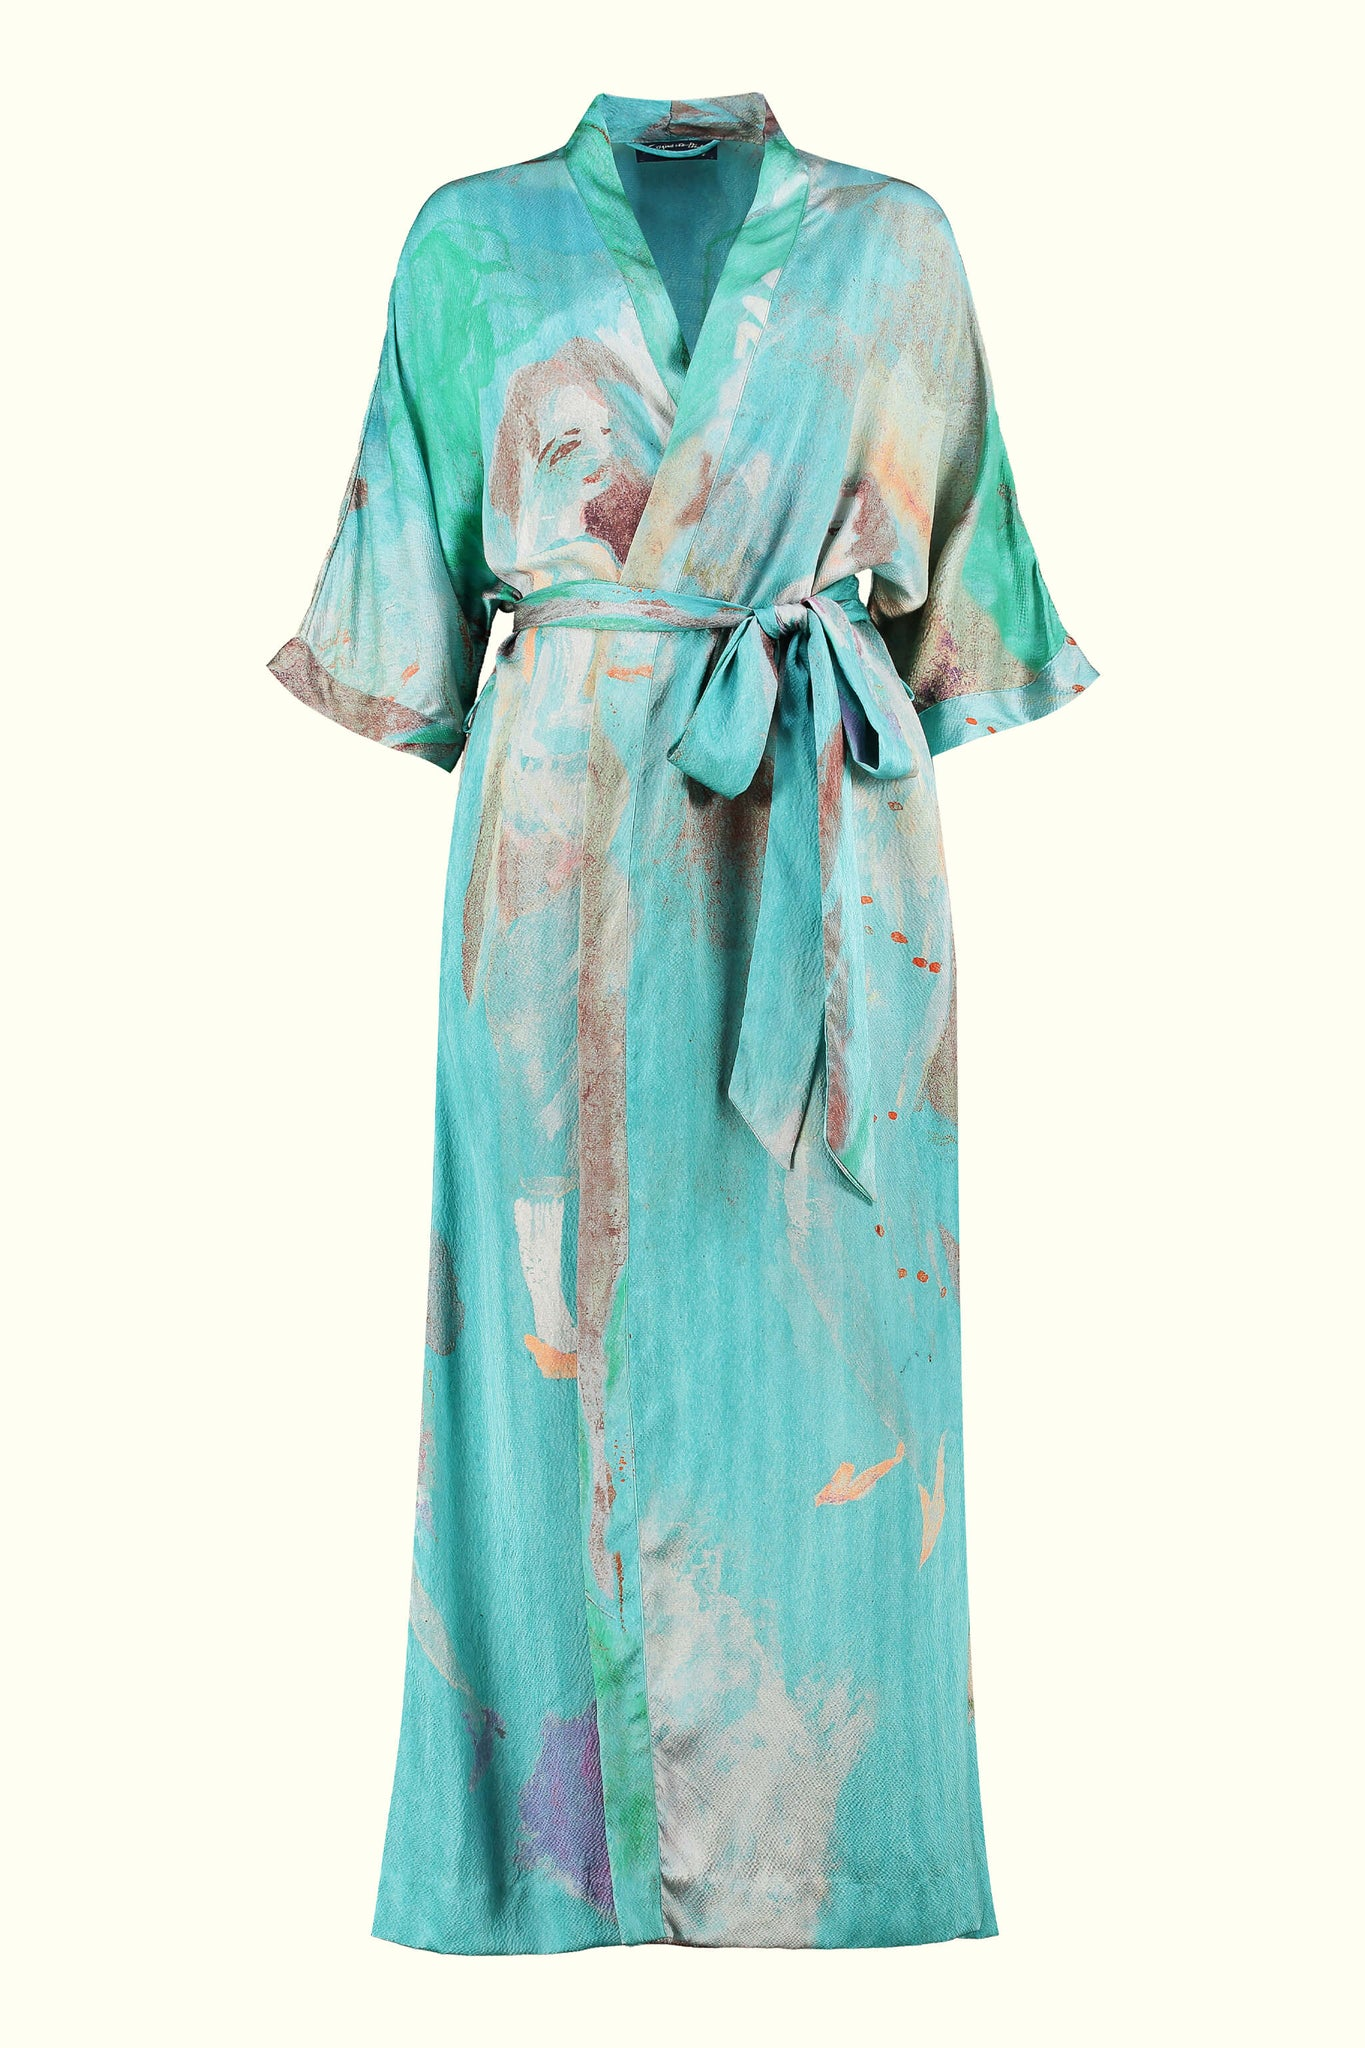 A luxury British silk robe by GVE in aqua Conversation print design.